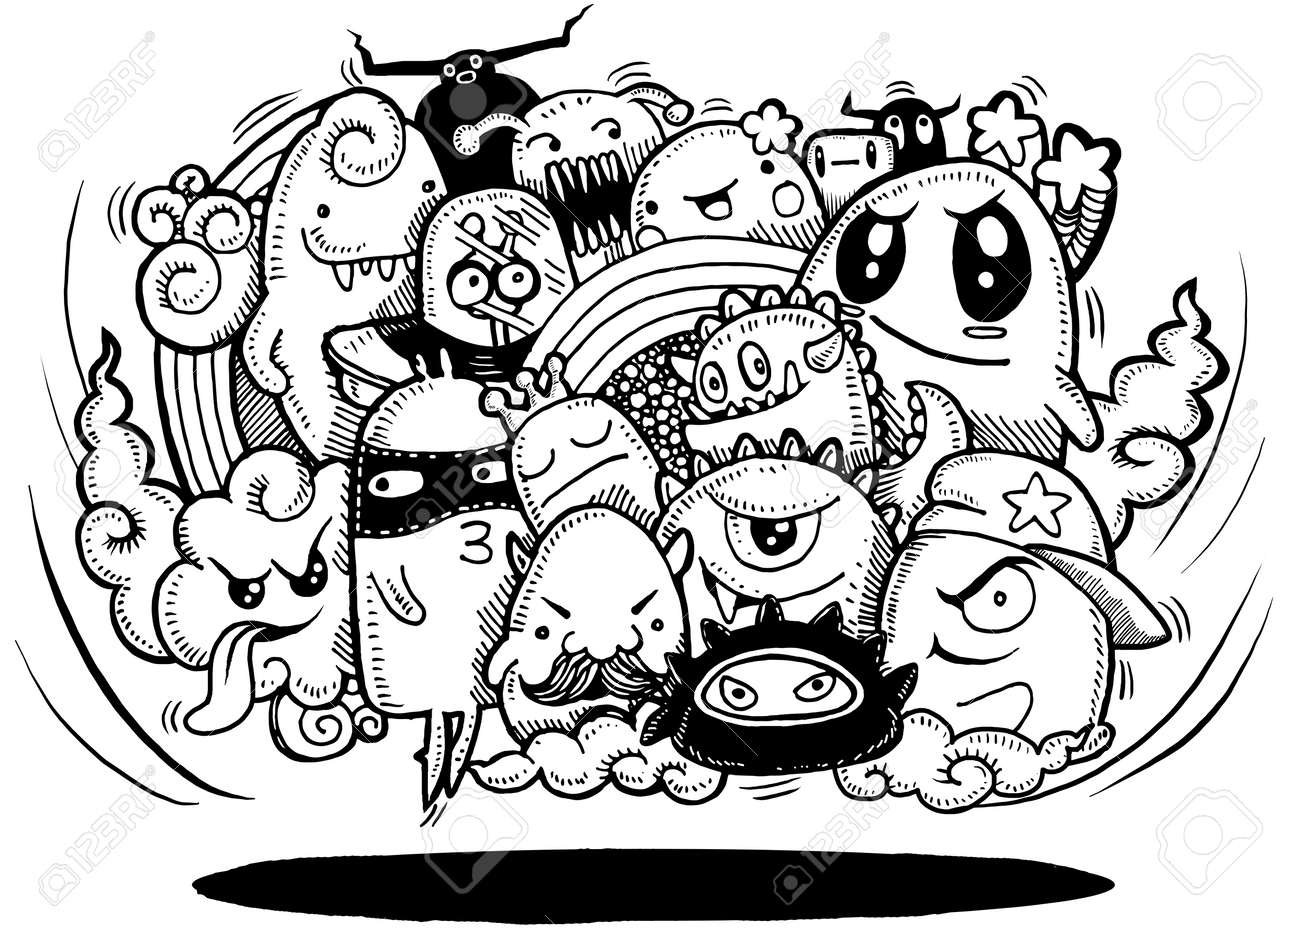 angry cartoon monster hand drawn crazy doodle monster group